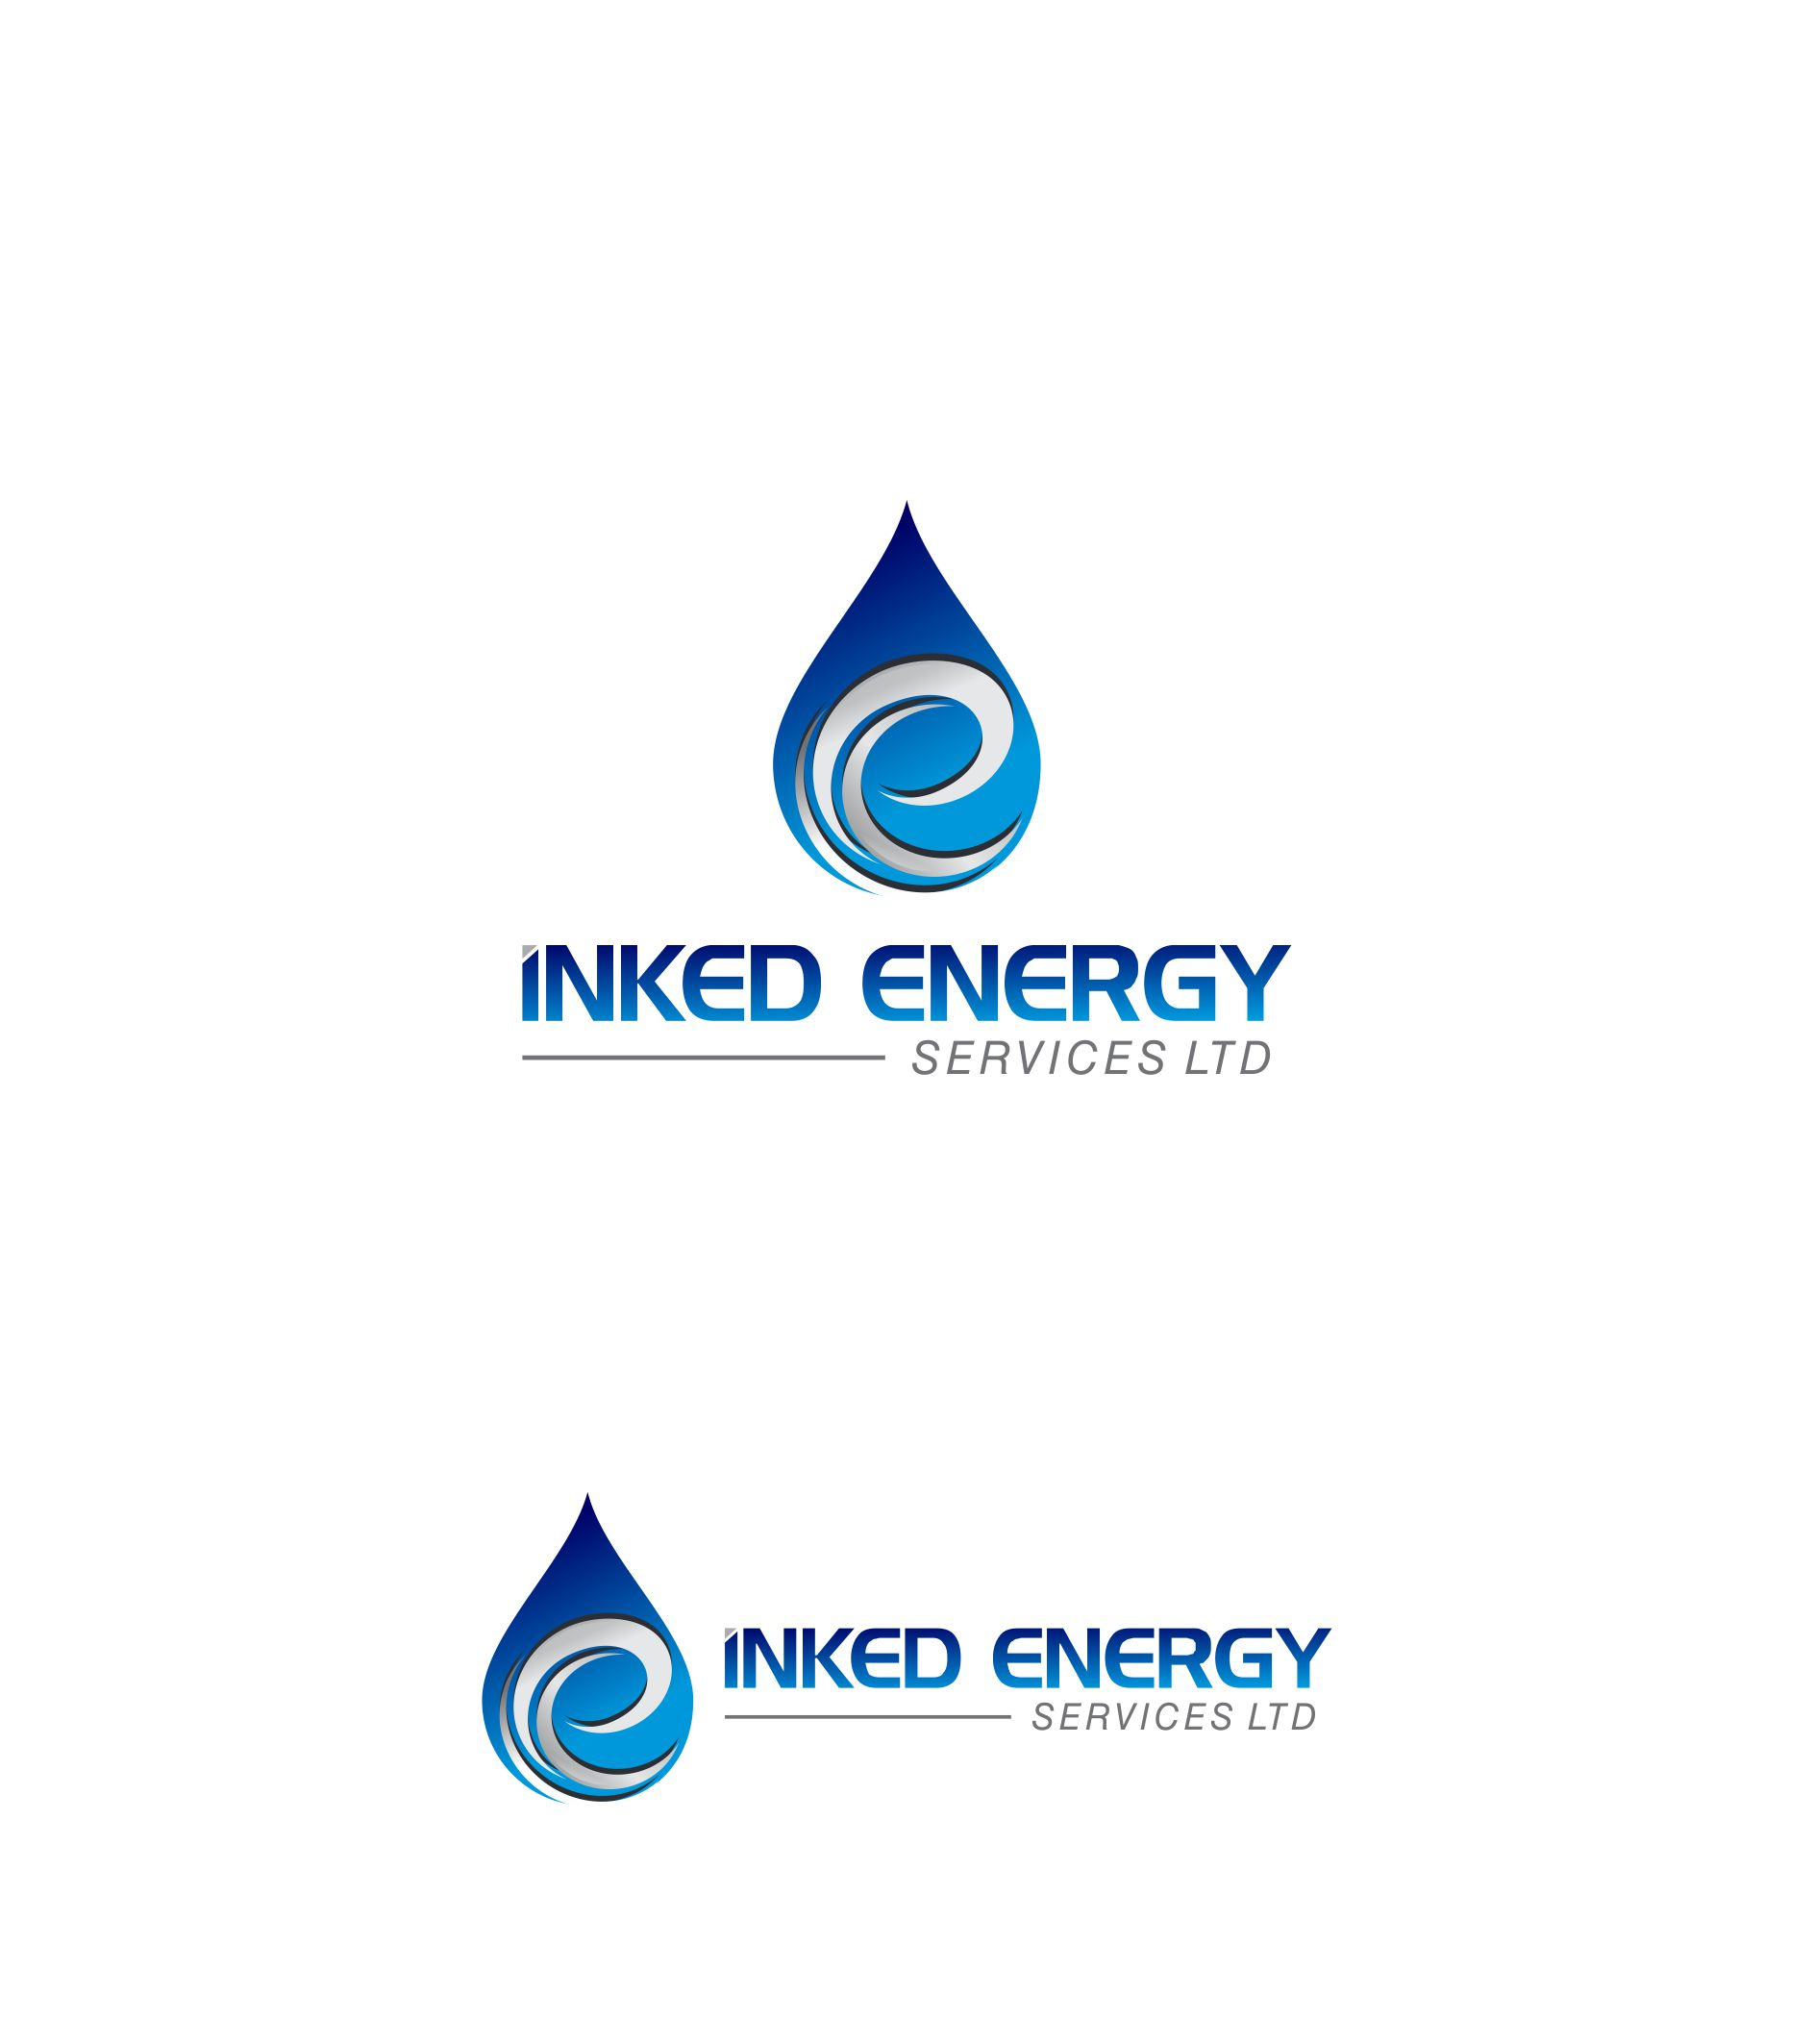 Logo Design by Raymond Garcia - Entry No. 56 in the Logo Design Contest Creative Logo Design for INKED ENERGY SERVICES LTD.